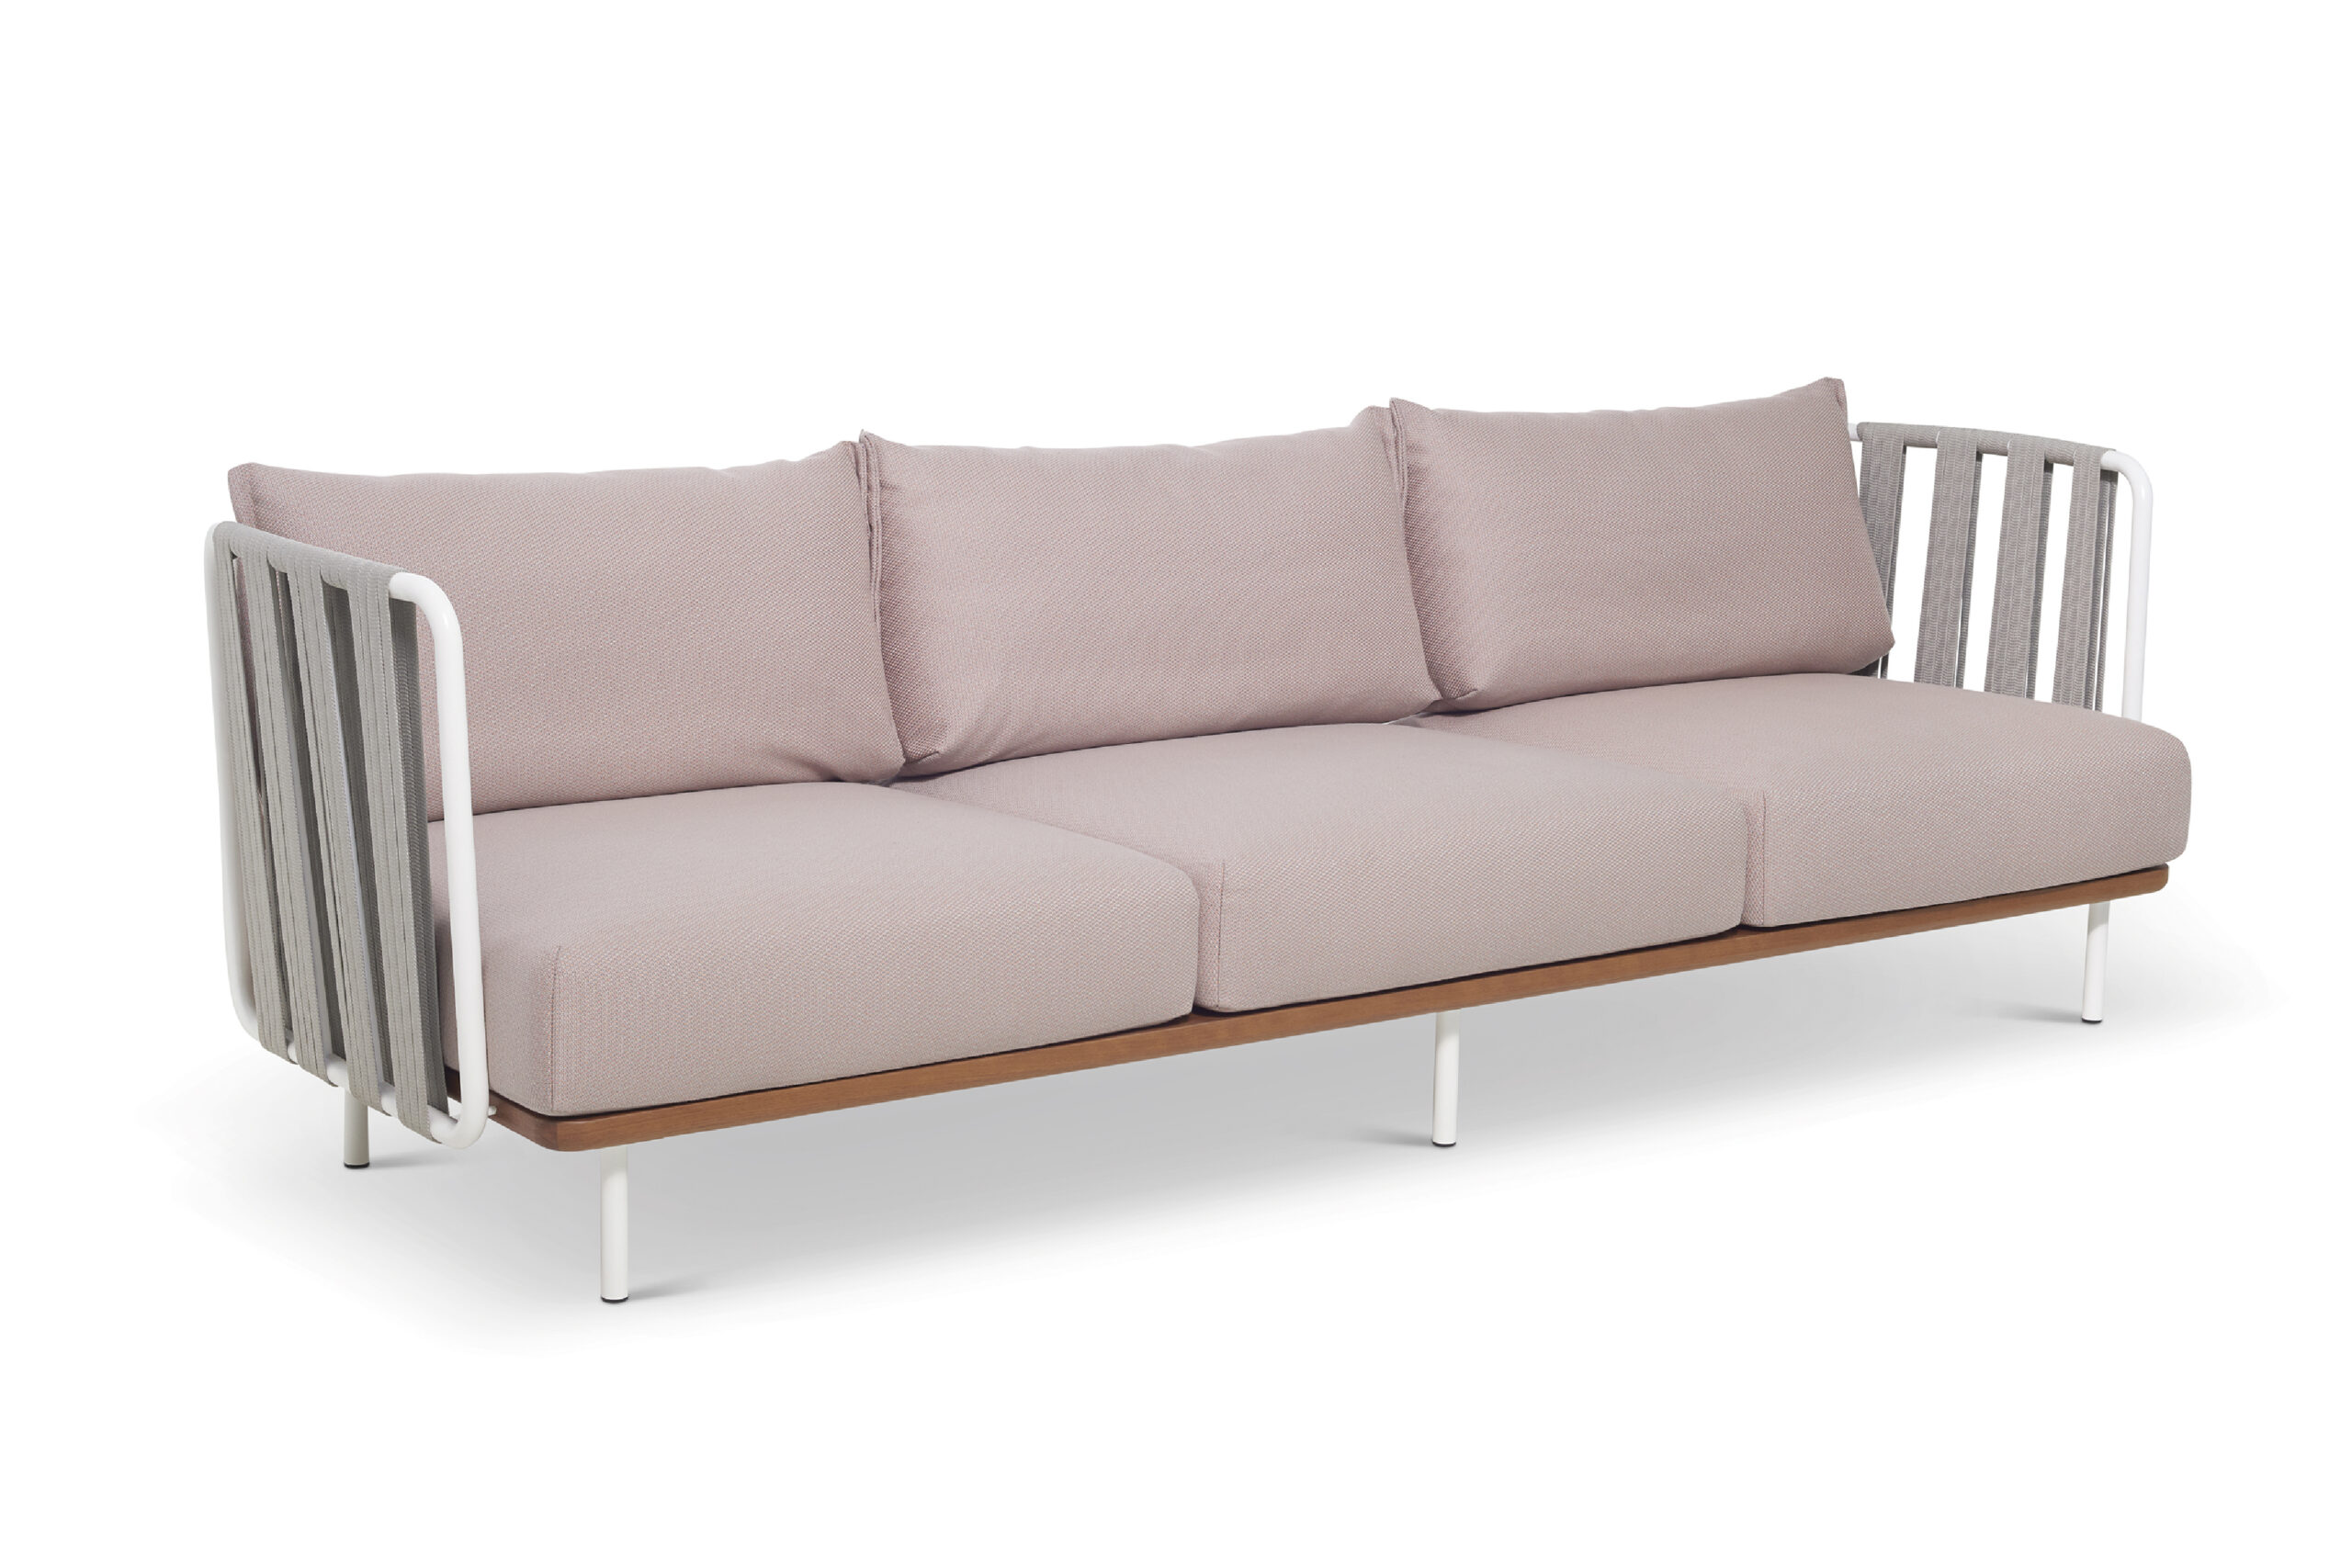 Teja IN 3 seater wood A copia